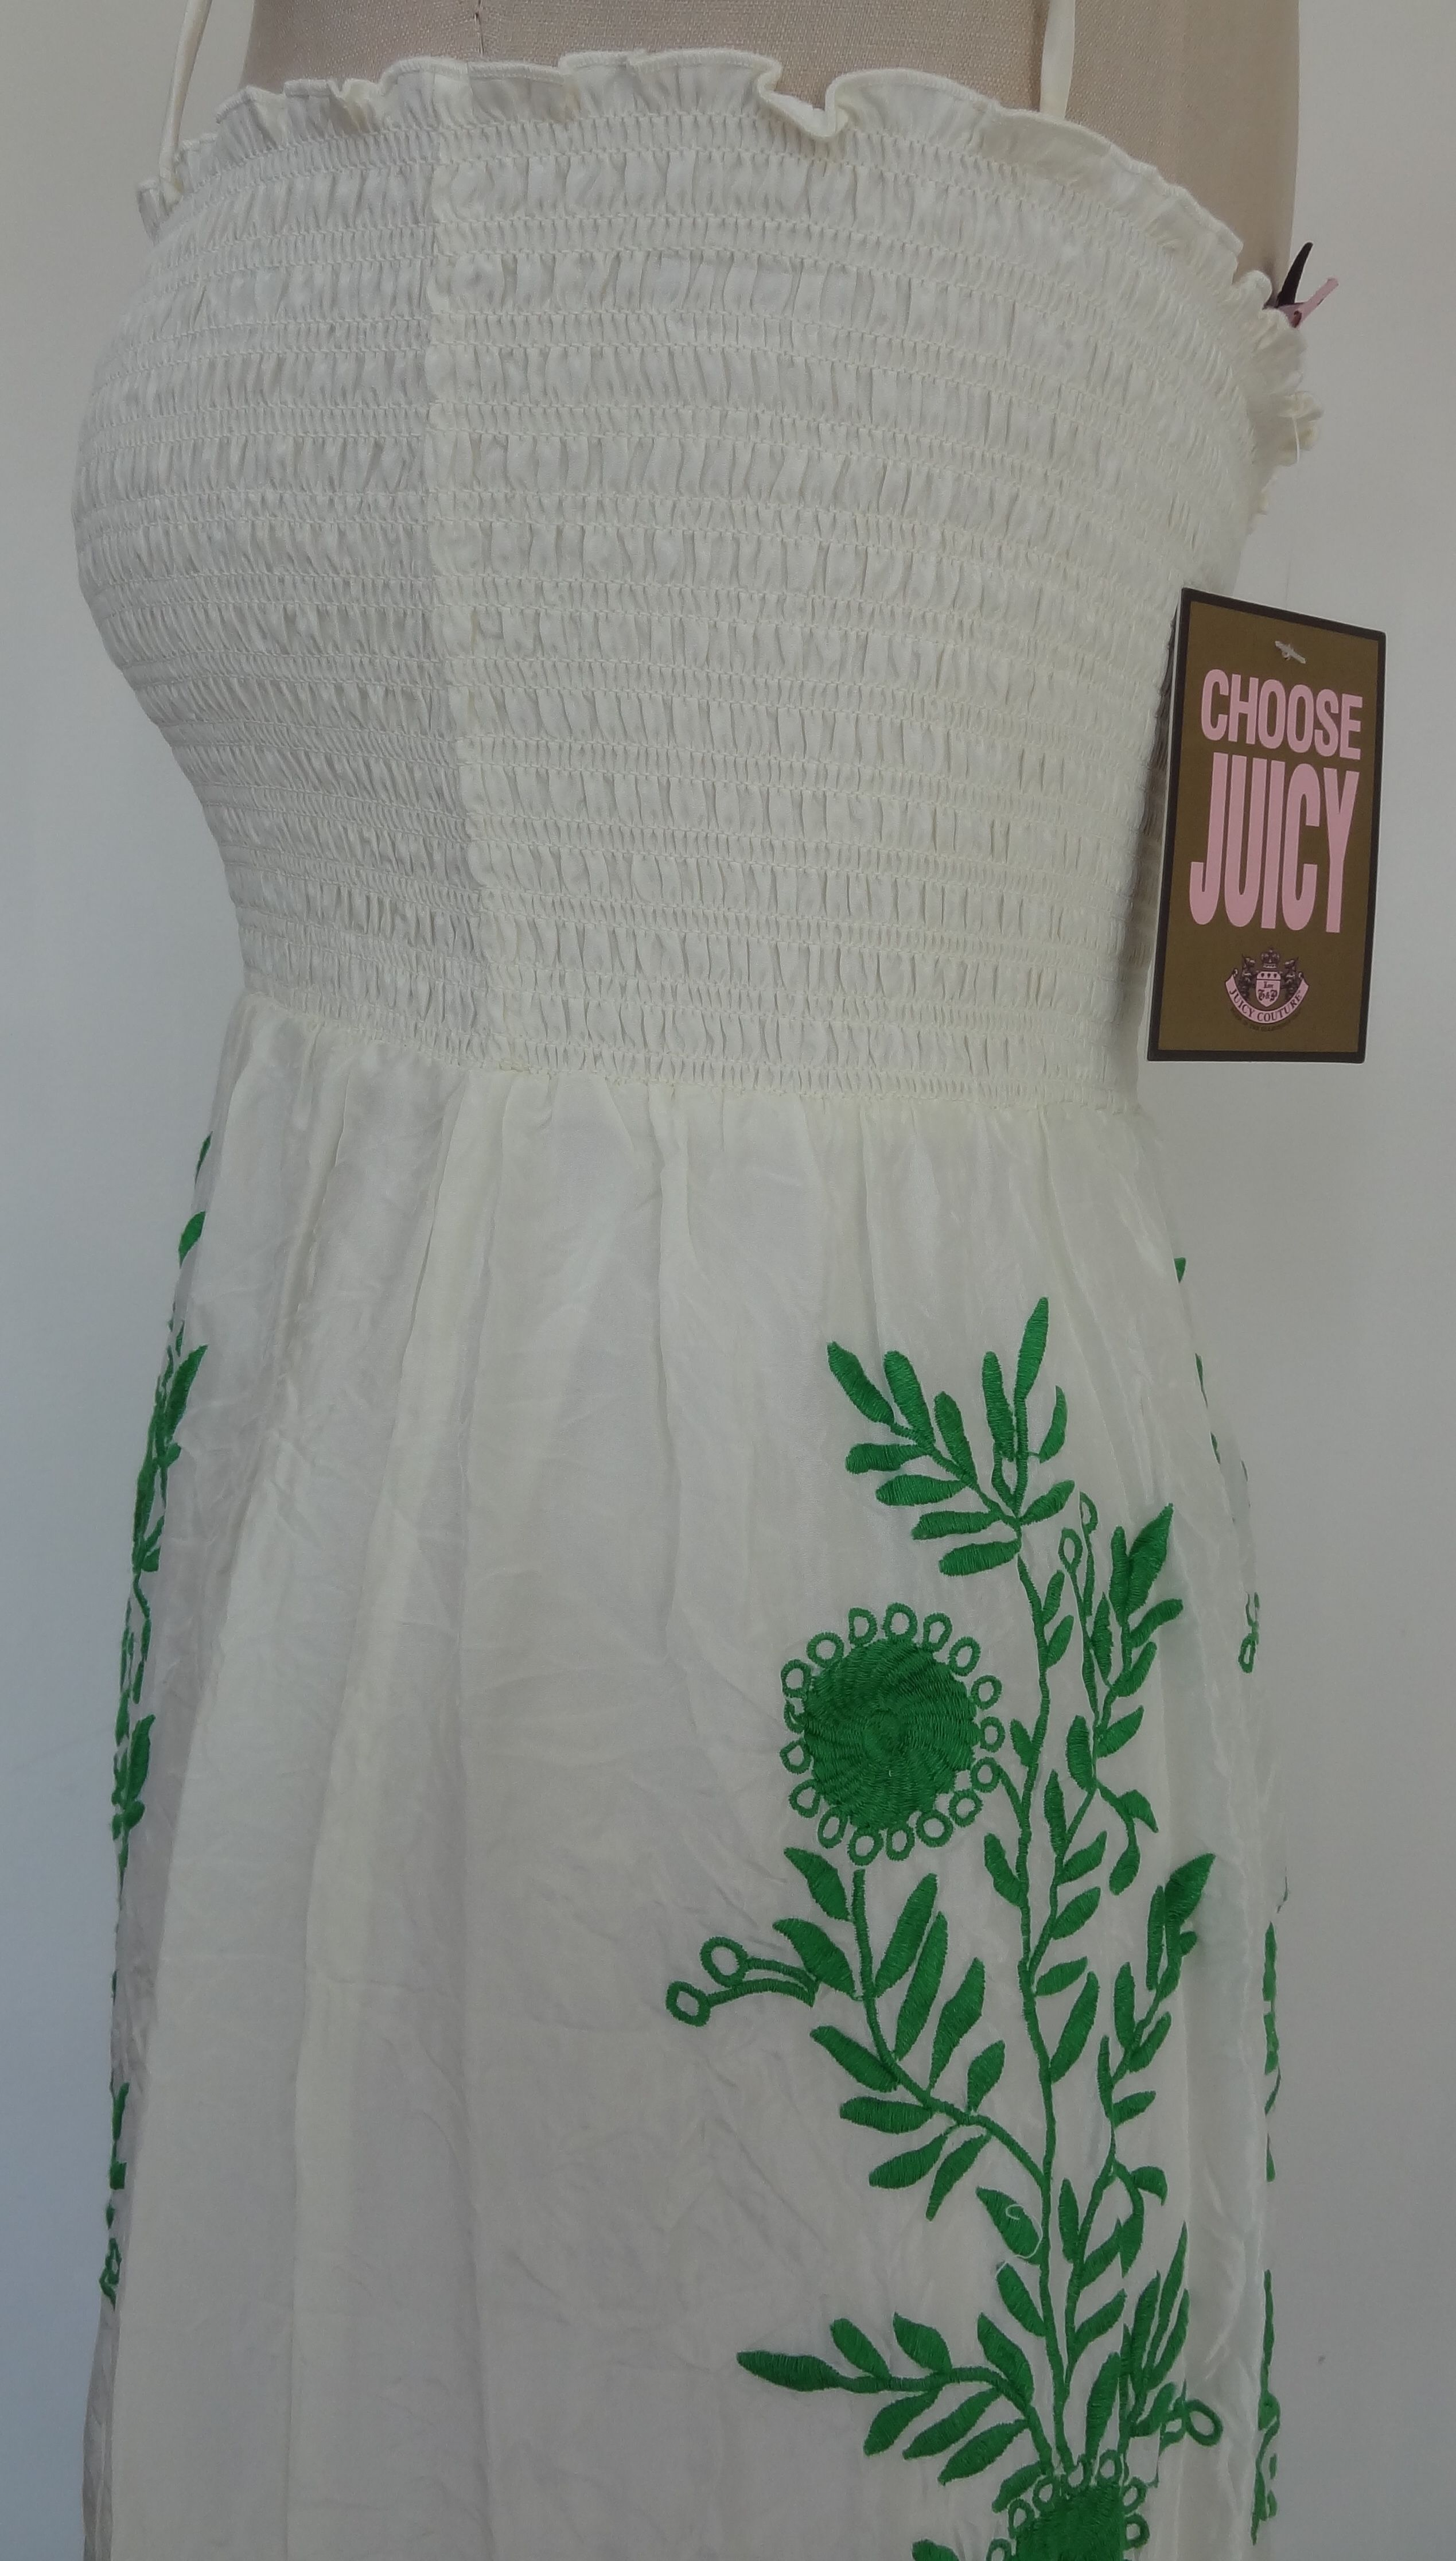 Festival Dress, Juicy Couture Original, designer dresses  One of Juicy Couture's most coveted pieces designed with a hippie inspiration and masterful embroidery   Insanely feminine crushed creamy silk cascades over an underneath skirt slip. Delicate smocked and finely stitched top with stretch for a perfect, stay-put fit. Straight neckline with tasseled self-tie adjustable straps  Exquisite floral and vine embroidery in Green down skirt, front and back. In Angel/Green Style